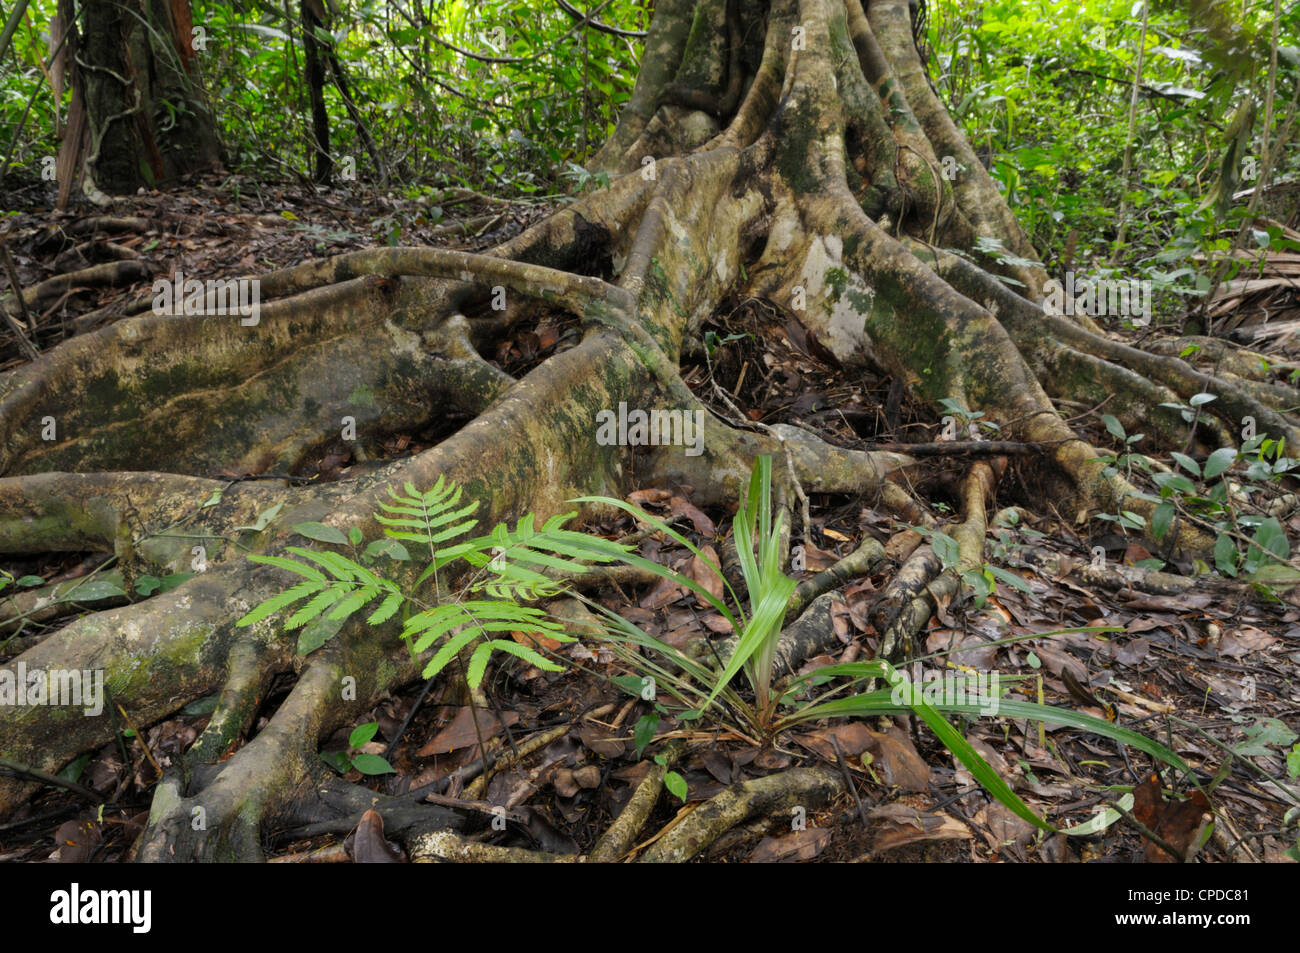 Long surface roots and a Mimosa sp plant, lowland rainforest, Tortuguero National Park, Costa Rica - Stock Image